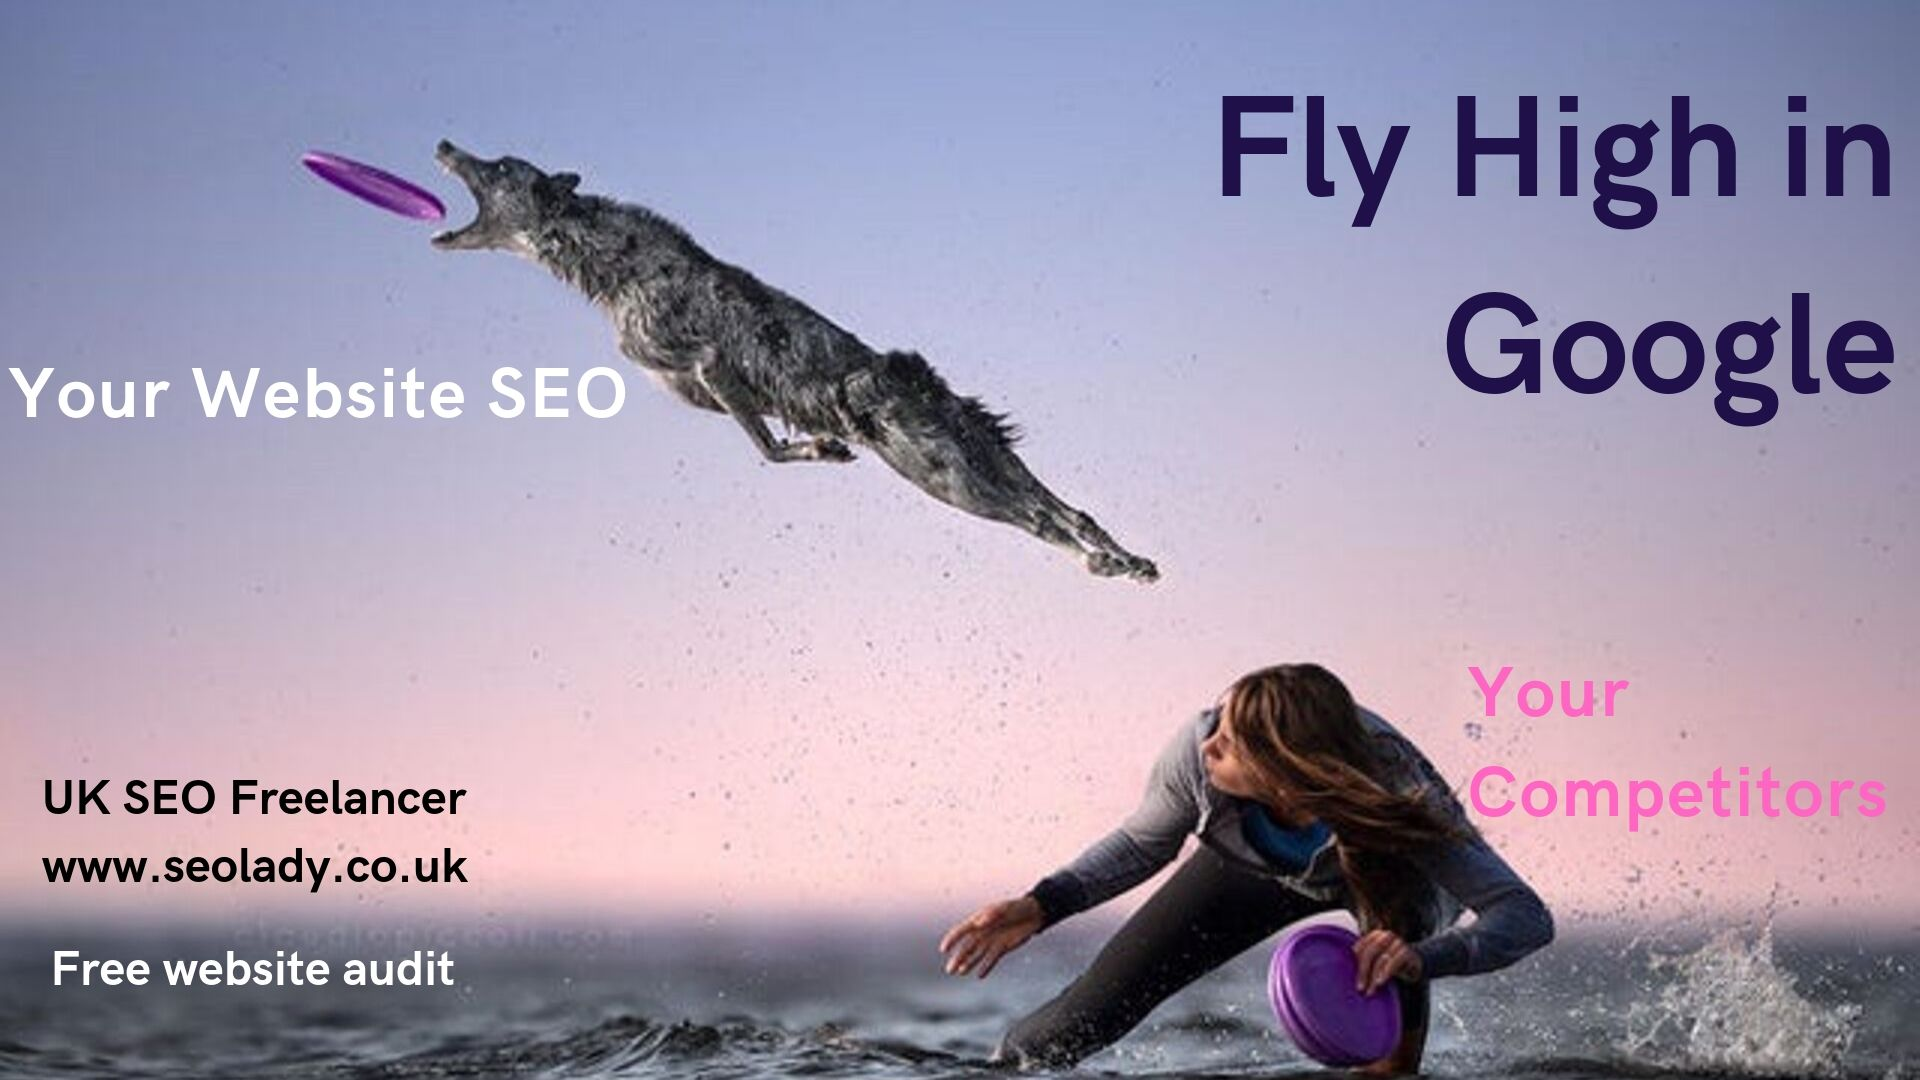 SEO FREELANCER UK CONSULTANT 2020 REMOTE TRAINING GOOGLE RANK WEBSITE